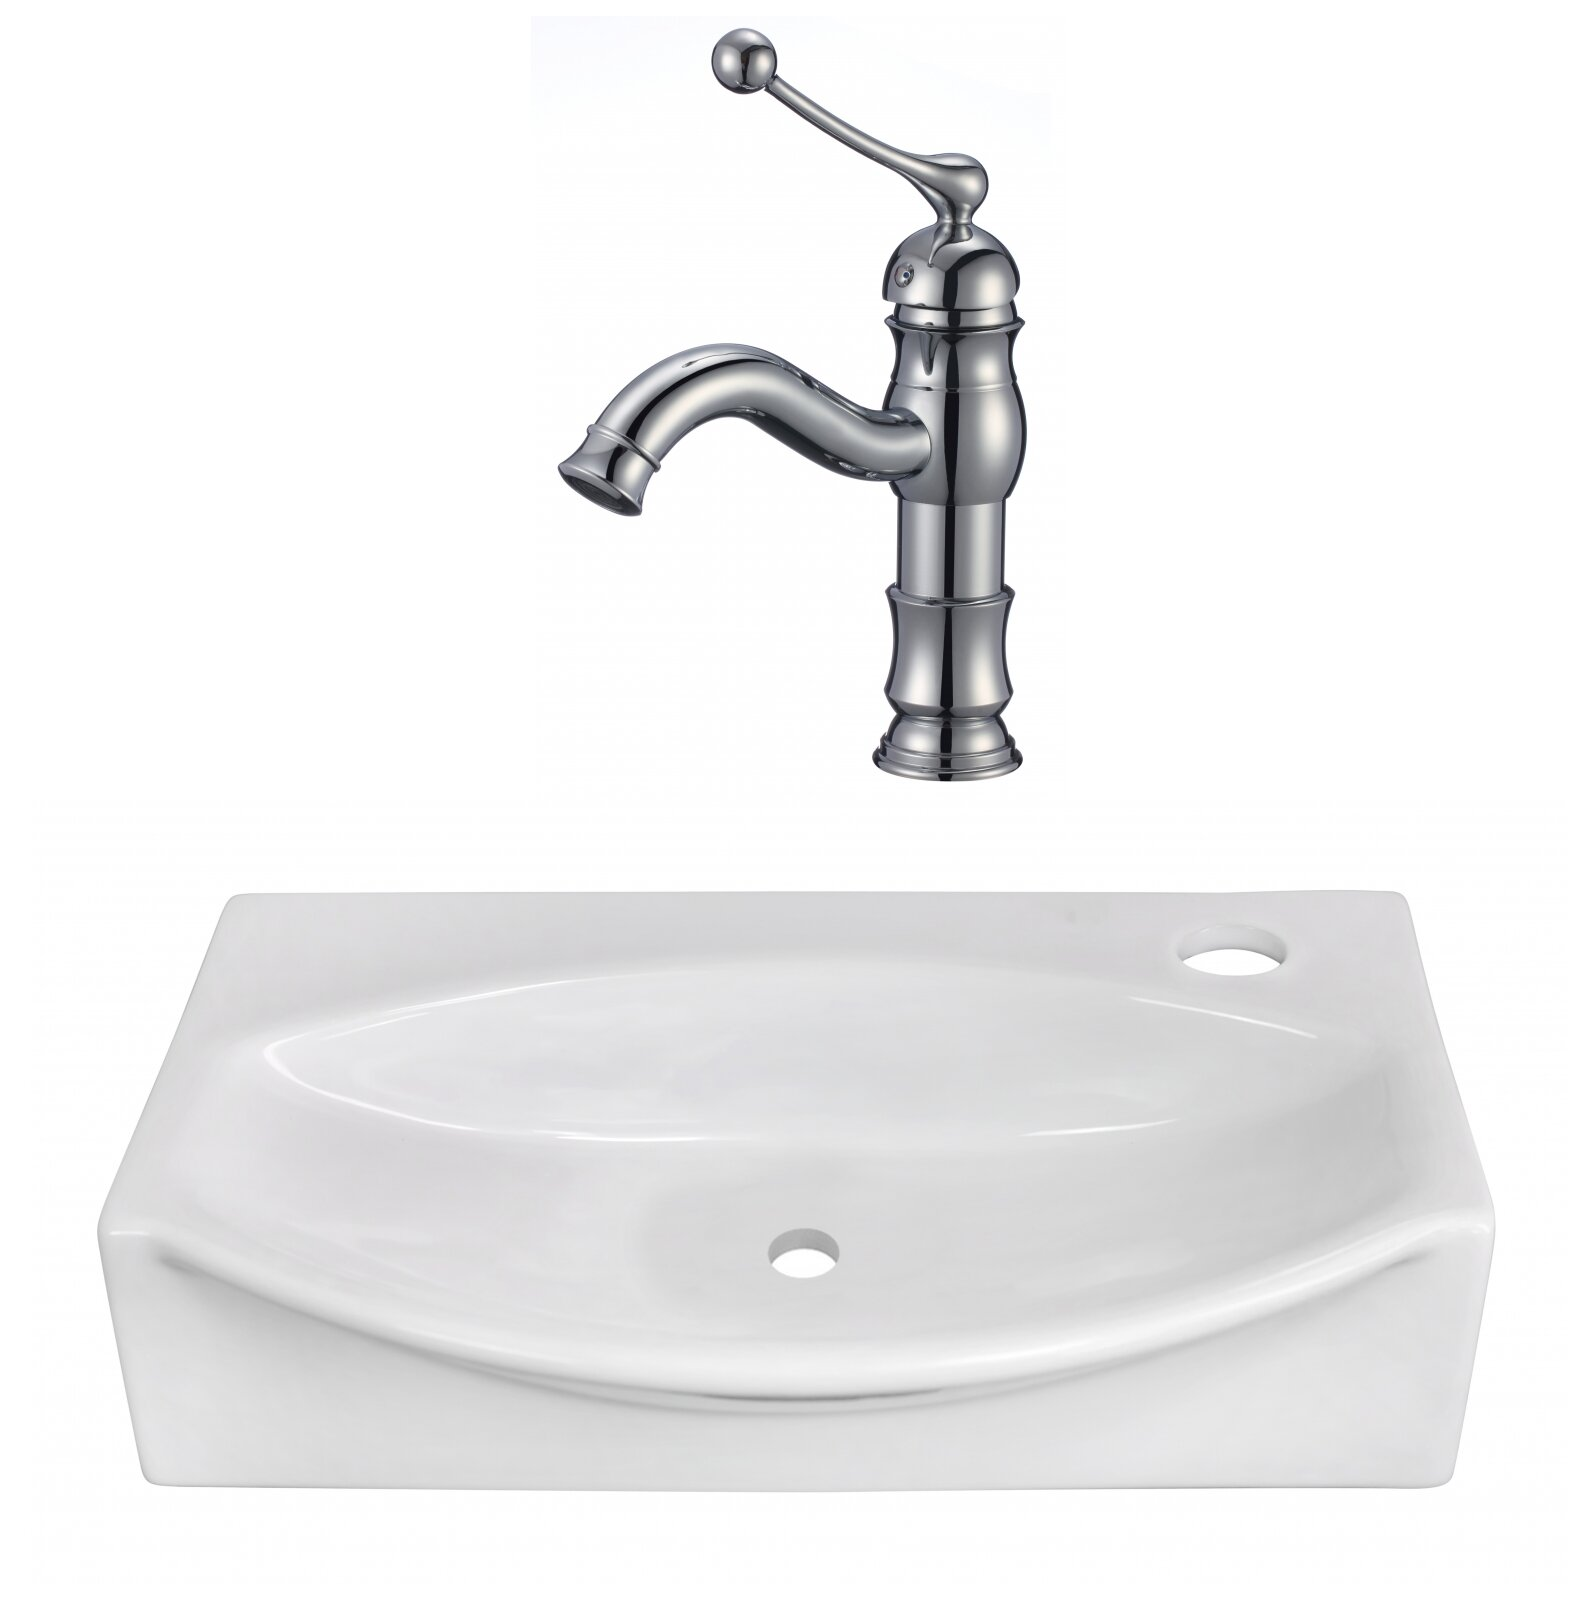 Avanities Above Counter Ceramic Specialty Vessel Bathroom Sink With Faucet And Overflow Wayfair